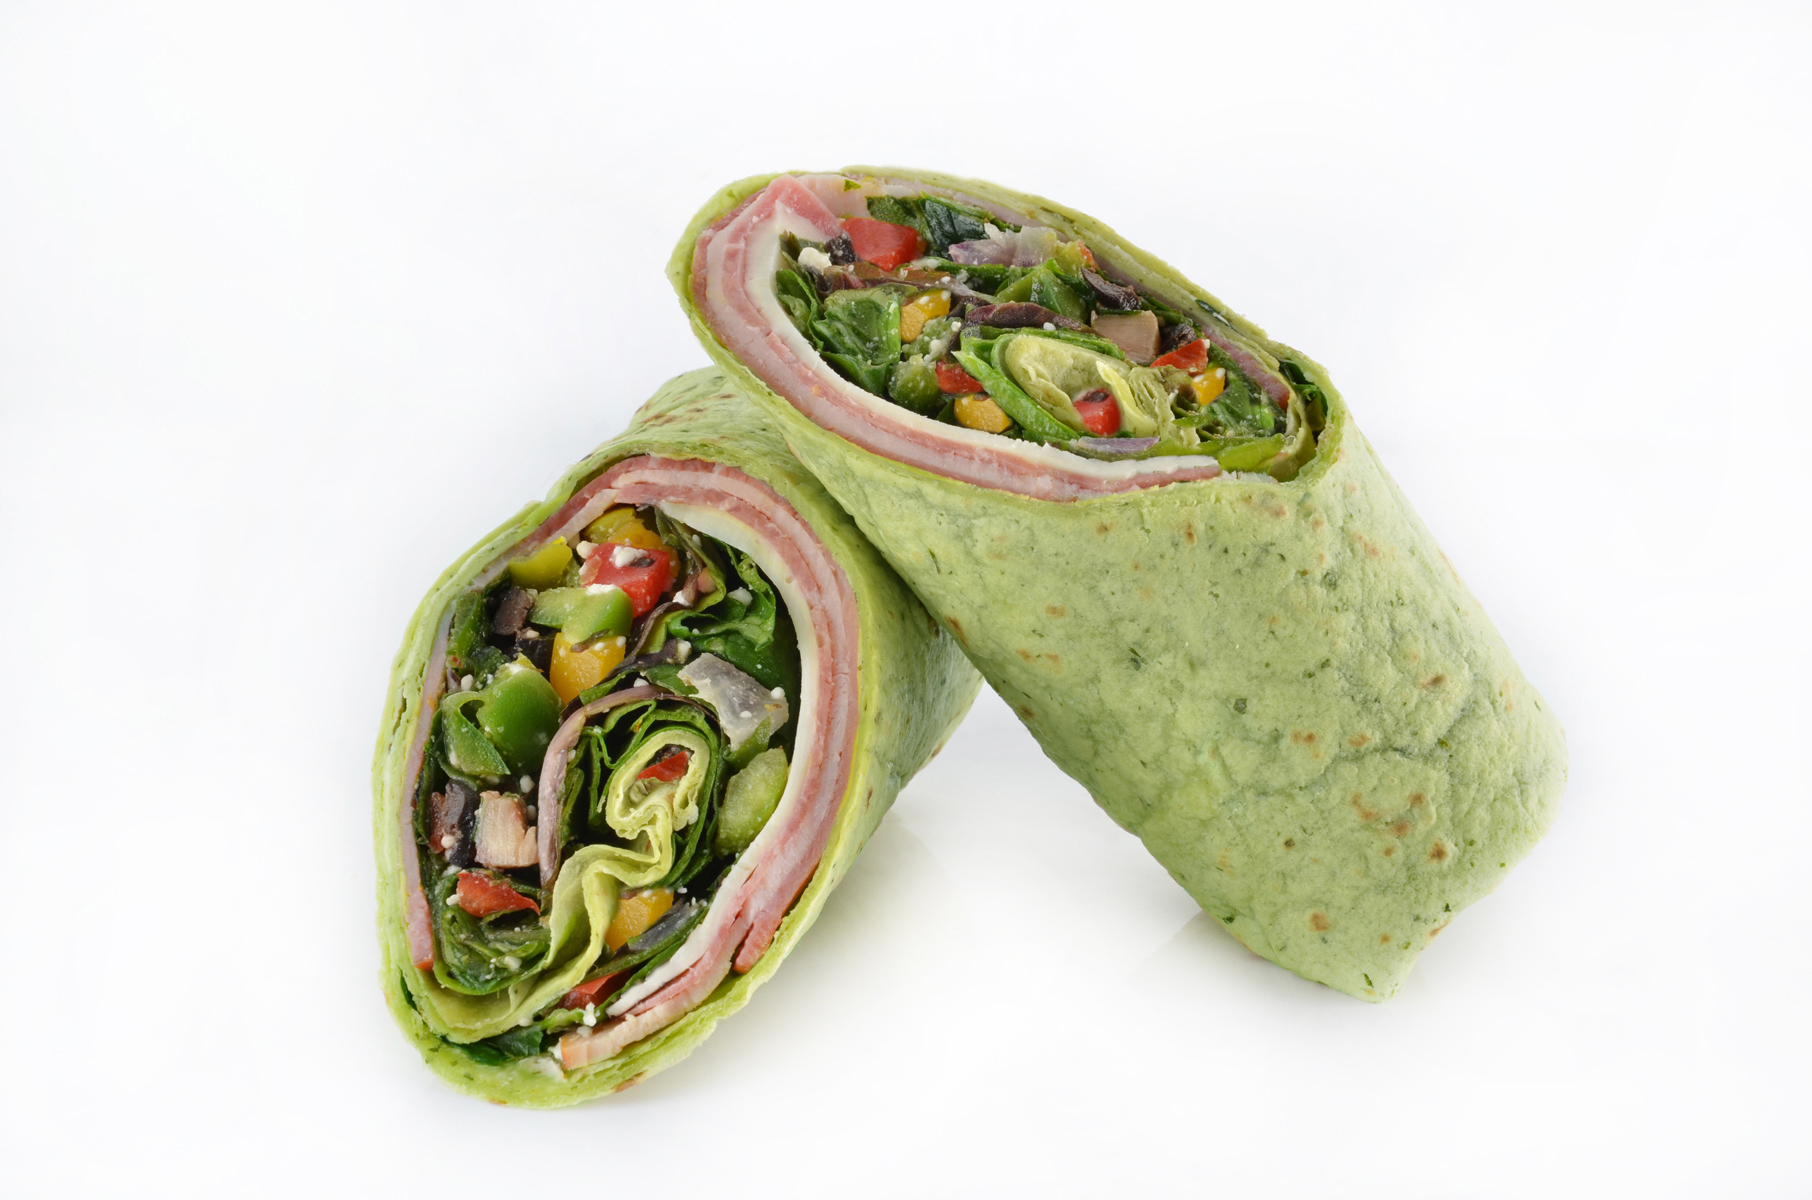 Spinach Wrap 1 copy.JPG